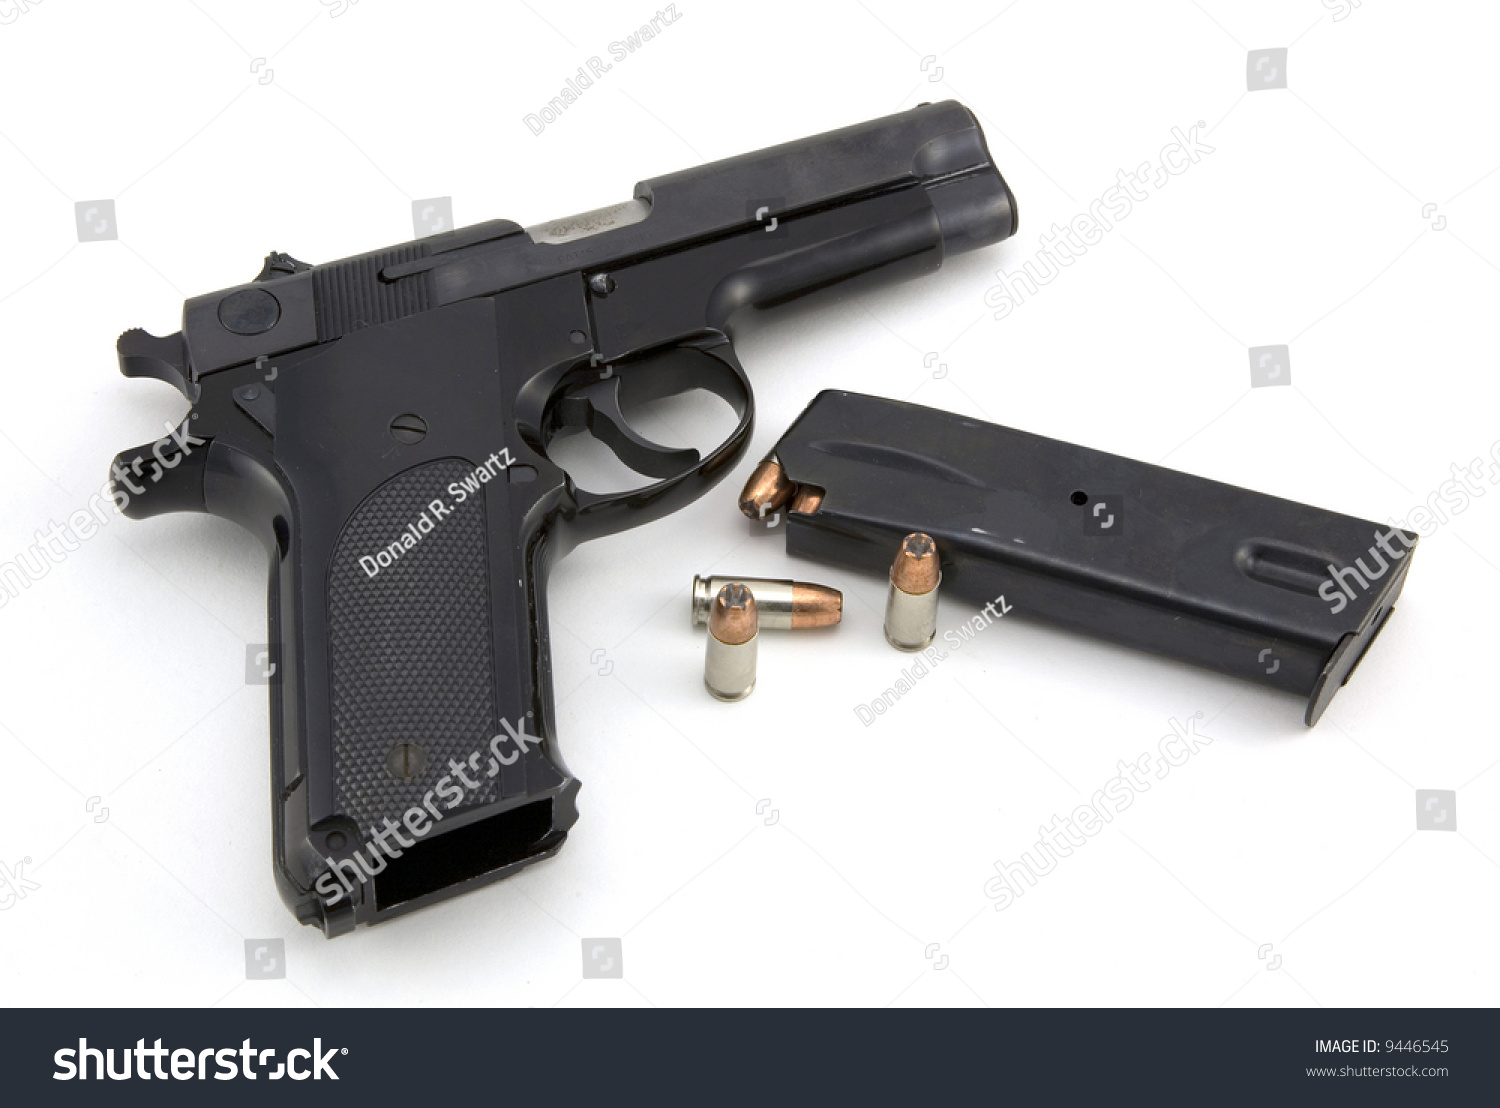 9mm Pistol Images 9mm pistol stock photos, images, & pictures ...